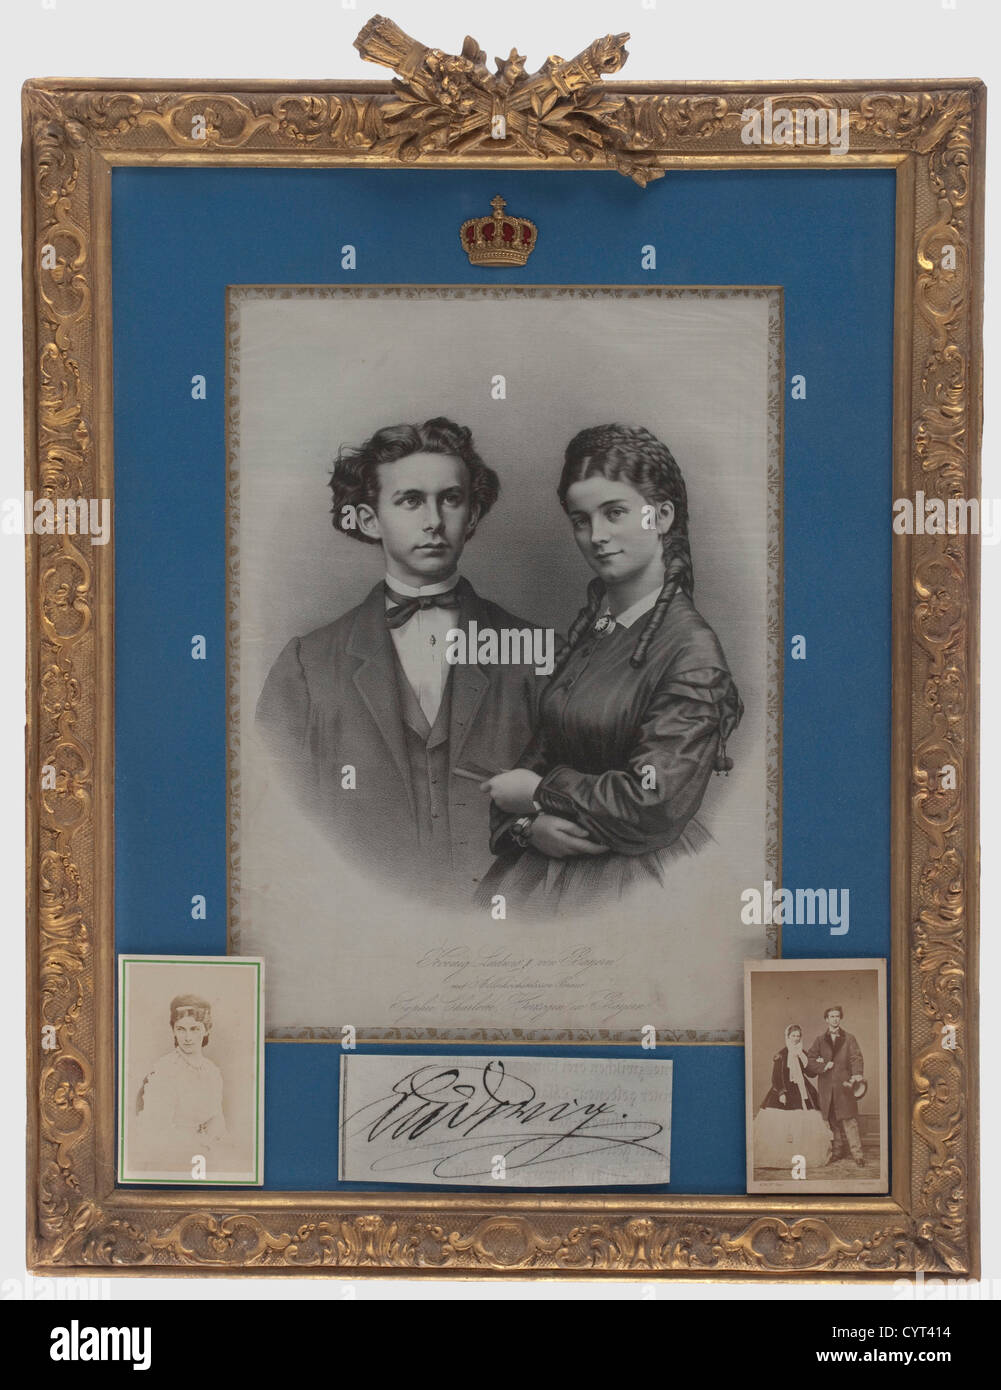 King Ludwig II of Bavaria and Duchess Sophie in Bavaria, an engagement portrait on silk, 1867 Lithograph on silk, Stock Photo